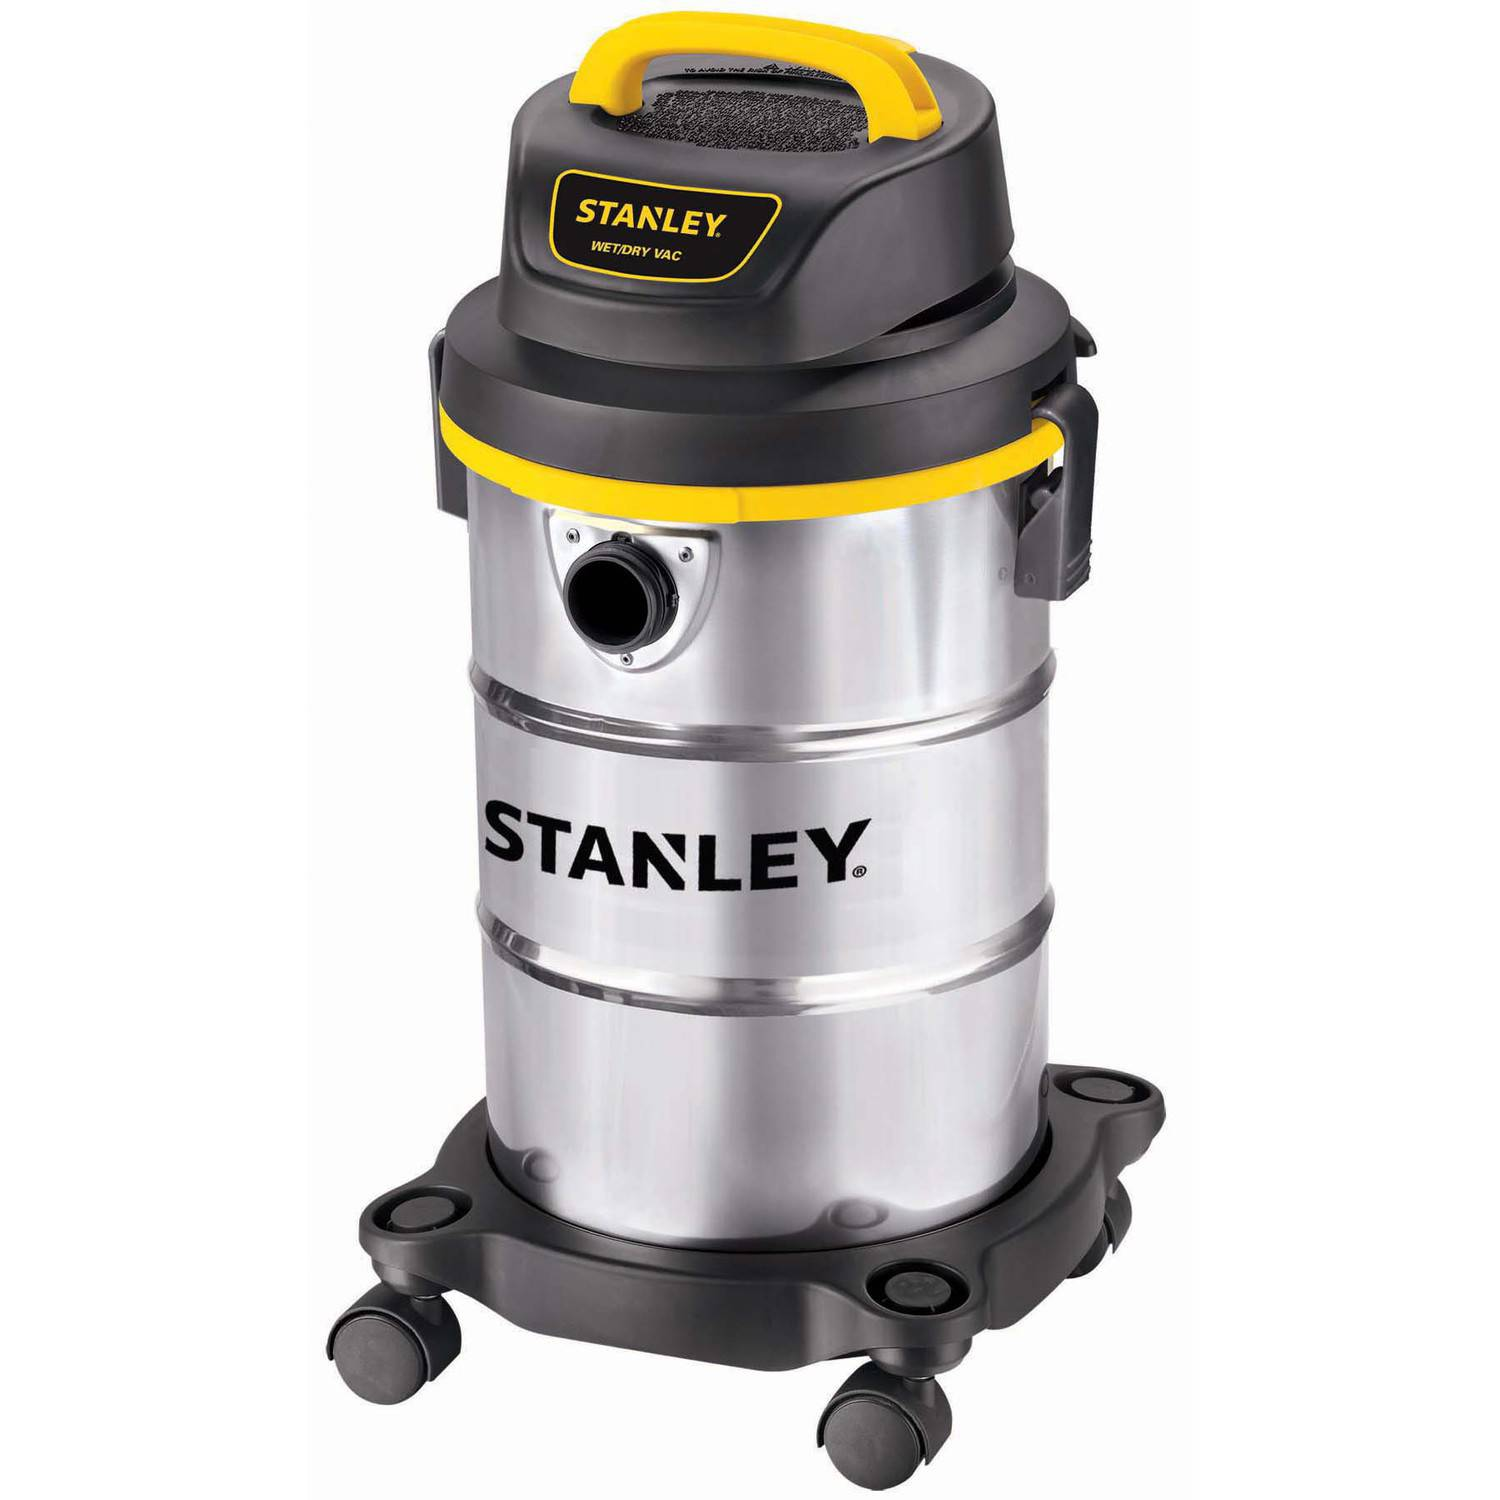 Stanley 5-gallon, 4.5-peak horse power,  stainless steel wet dry vacuum